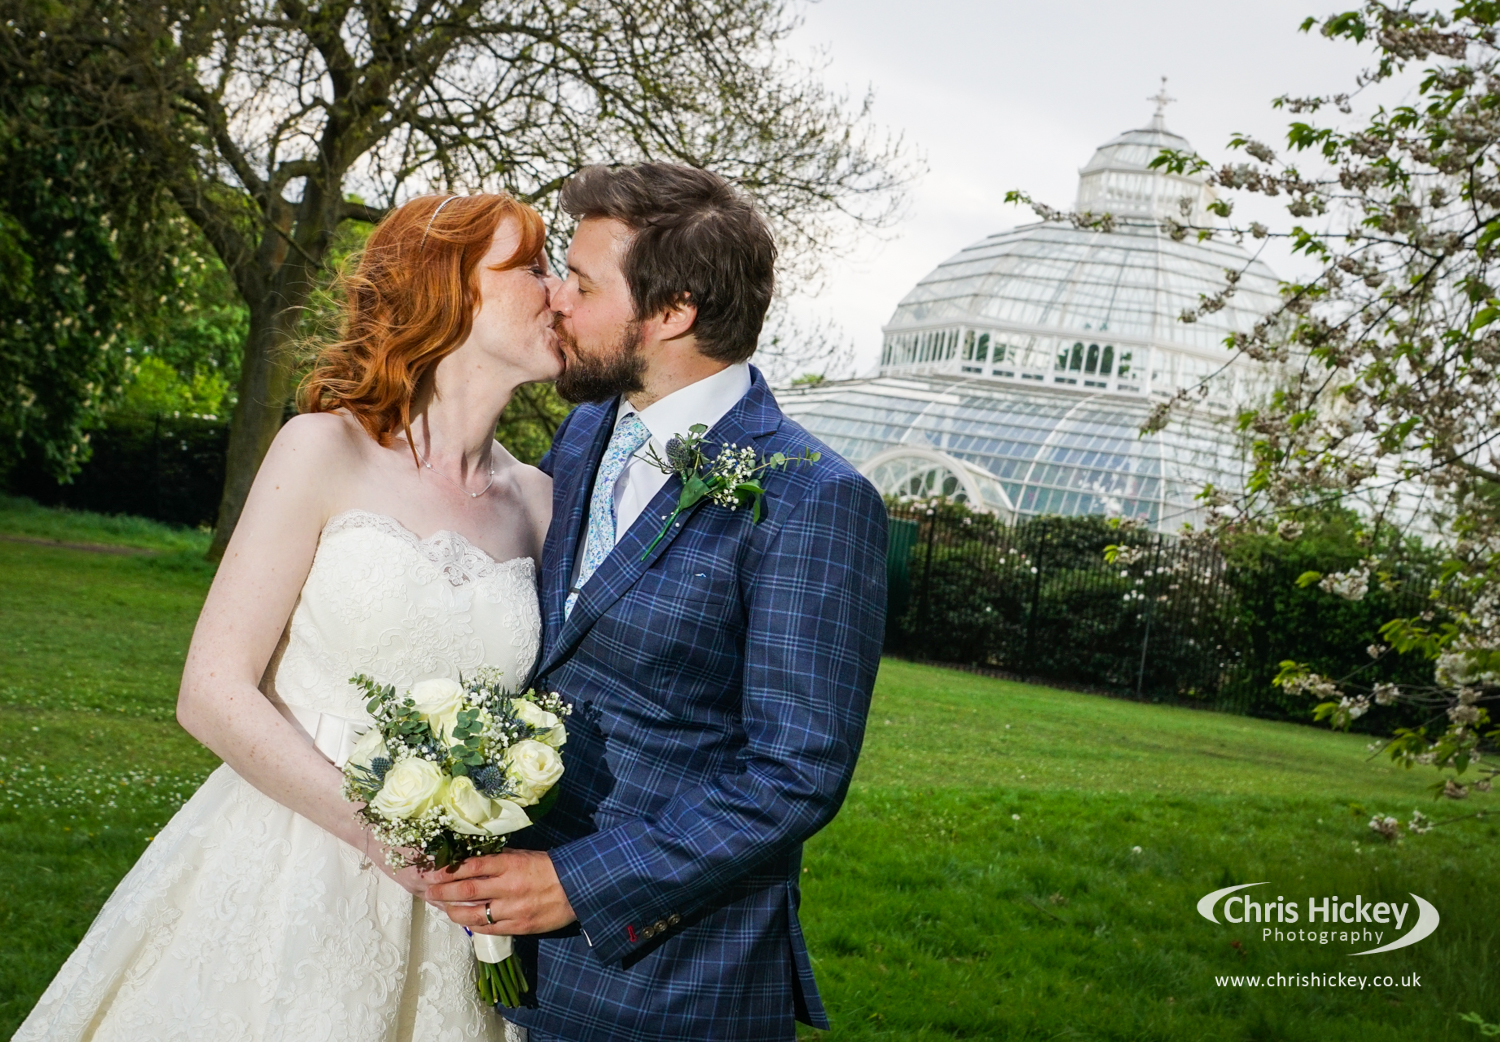 Wedding Photography at Sefton Park Palm House